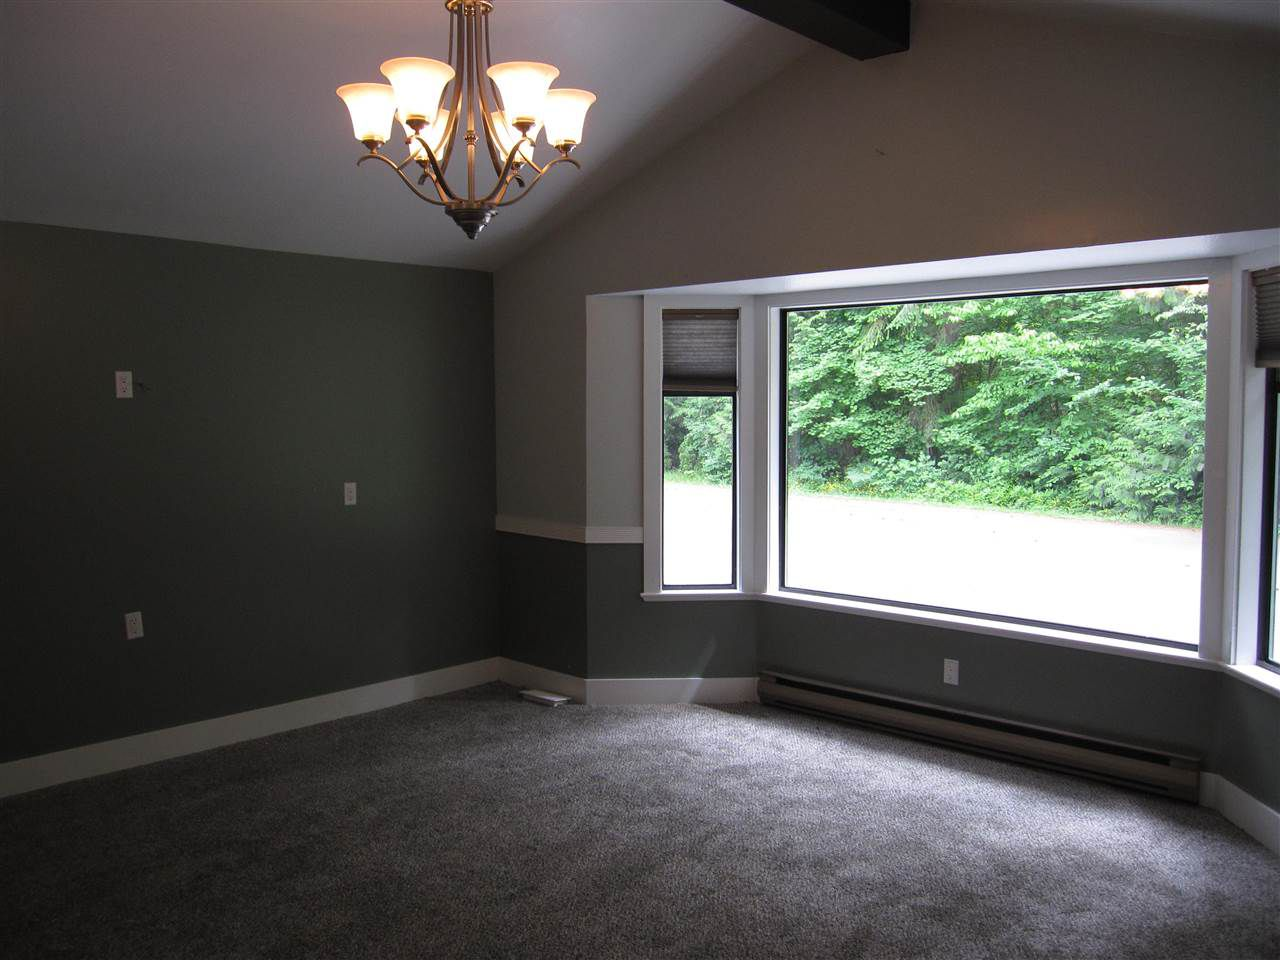 Photo 5: Photos: 23385 128 Avenue in Maple Ridge: East Central House for sale : MLS®# R2180788